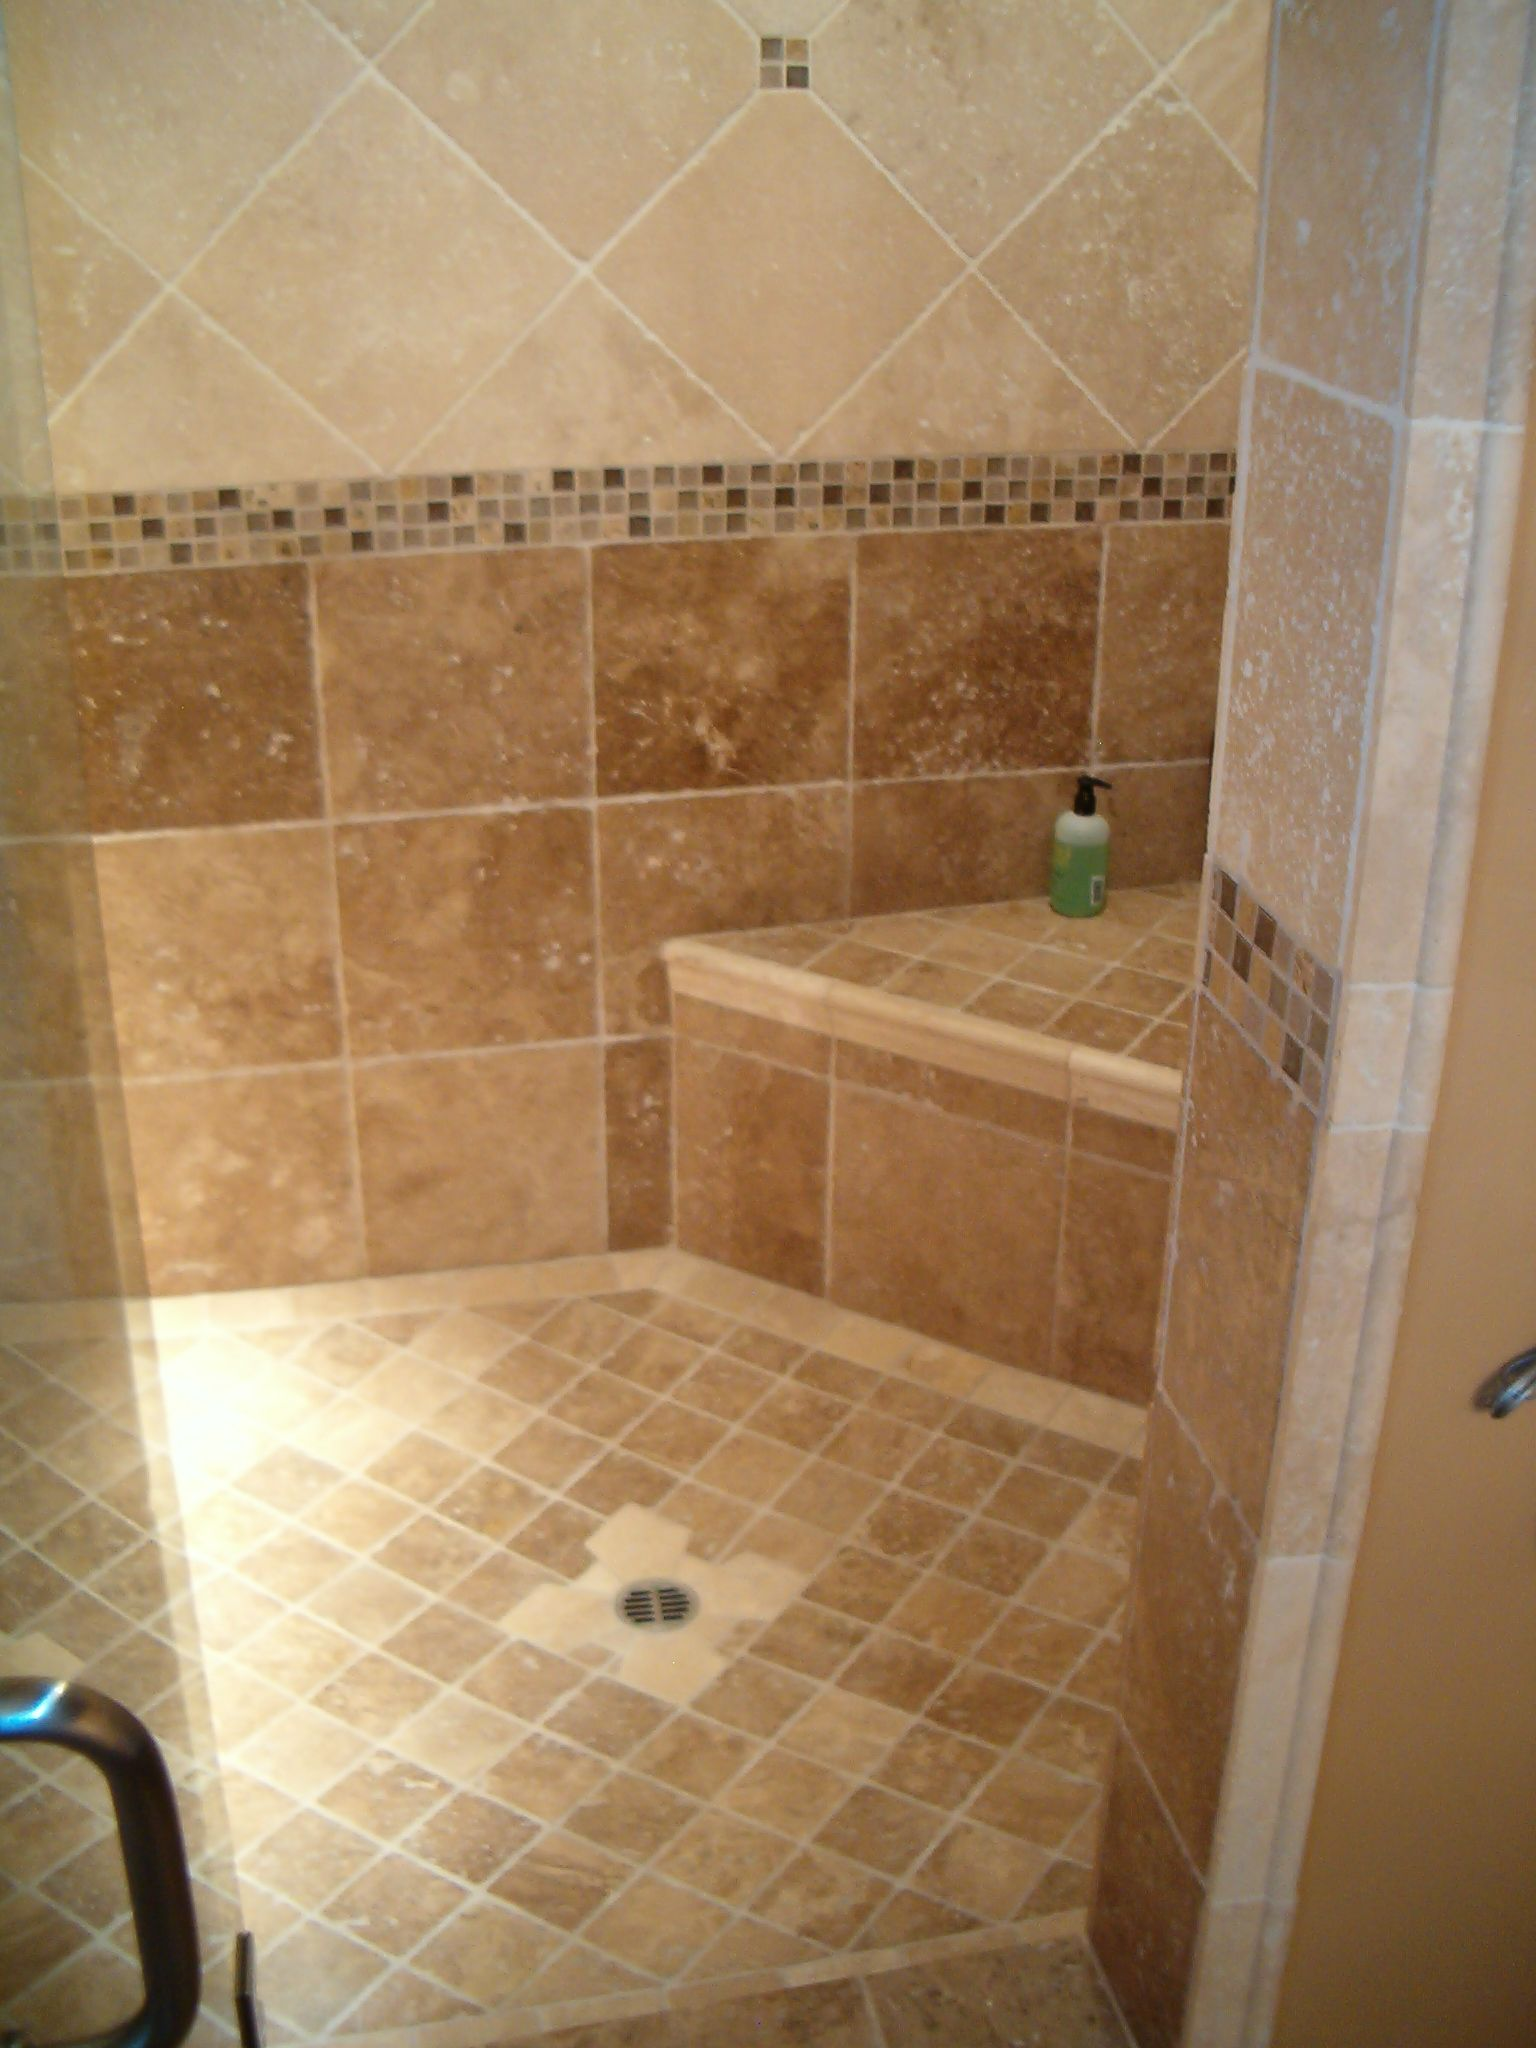 Bathroom Tile Ideas Photos The Finished Shower Is Sealed for Low